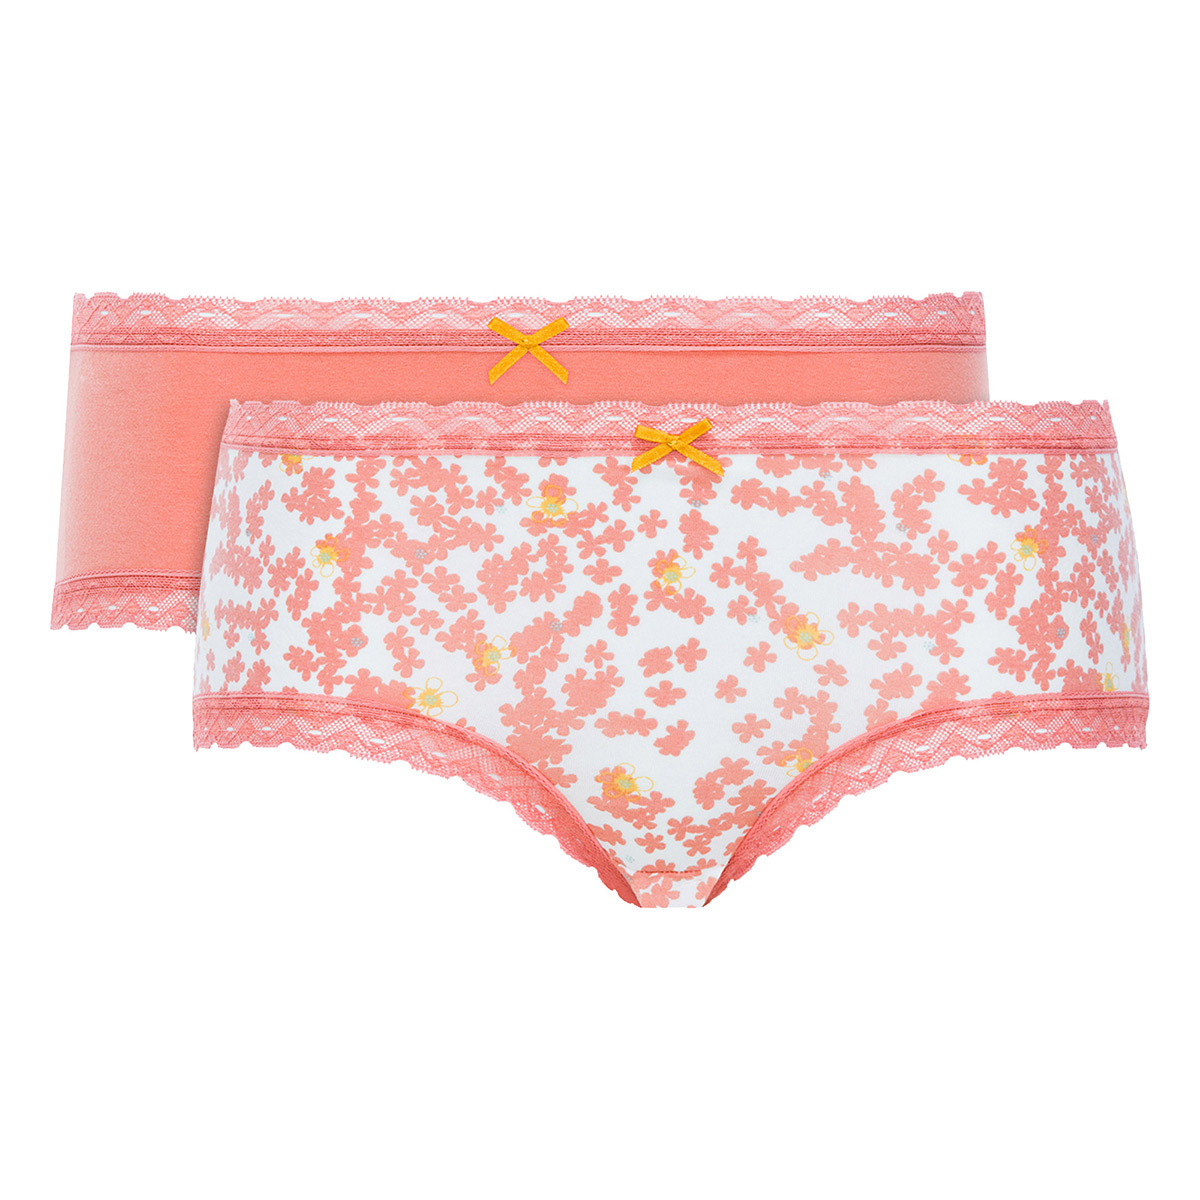 Pack of 2 Shorts in Orange Print - Cotton Fancy - PLAYTEX